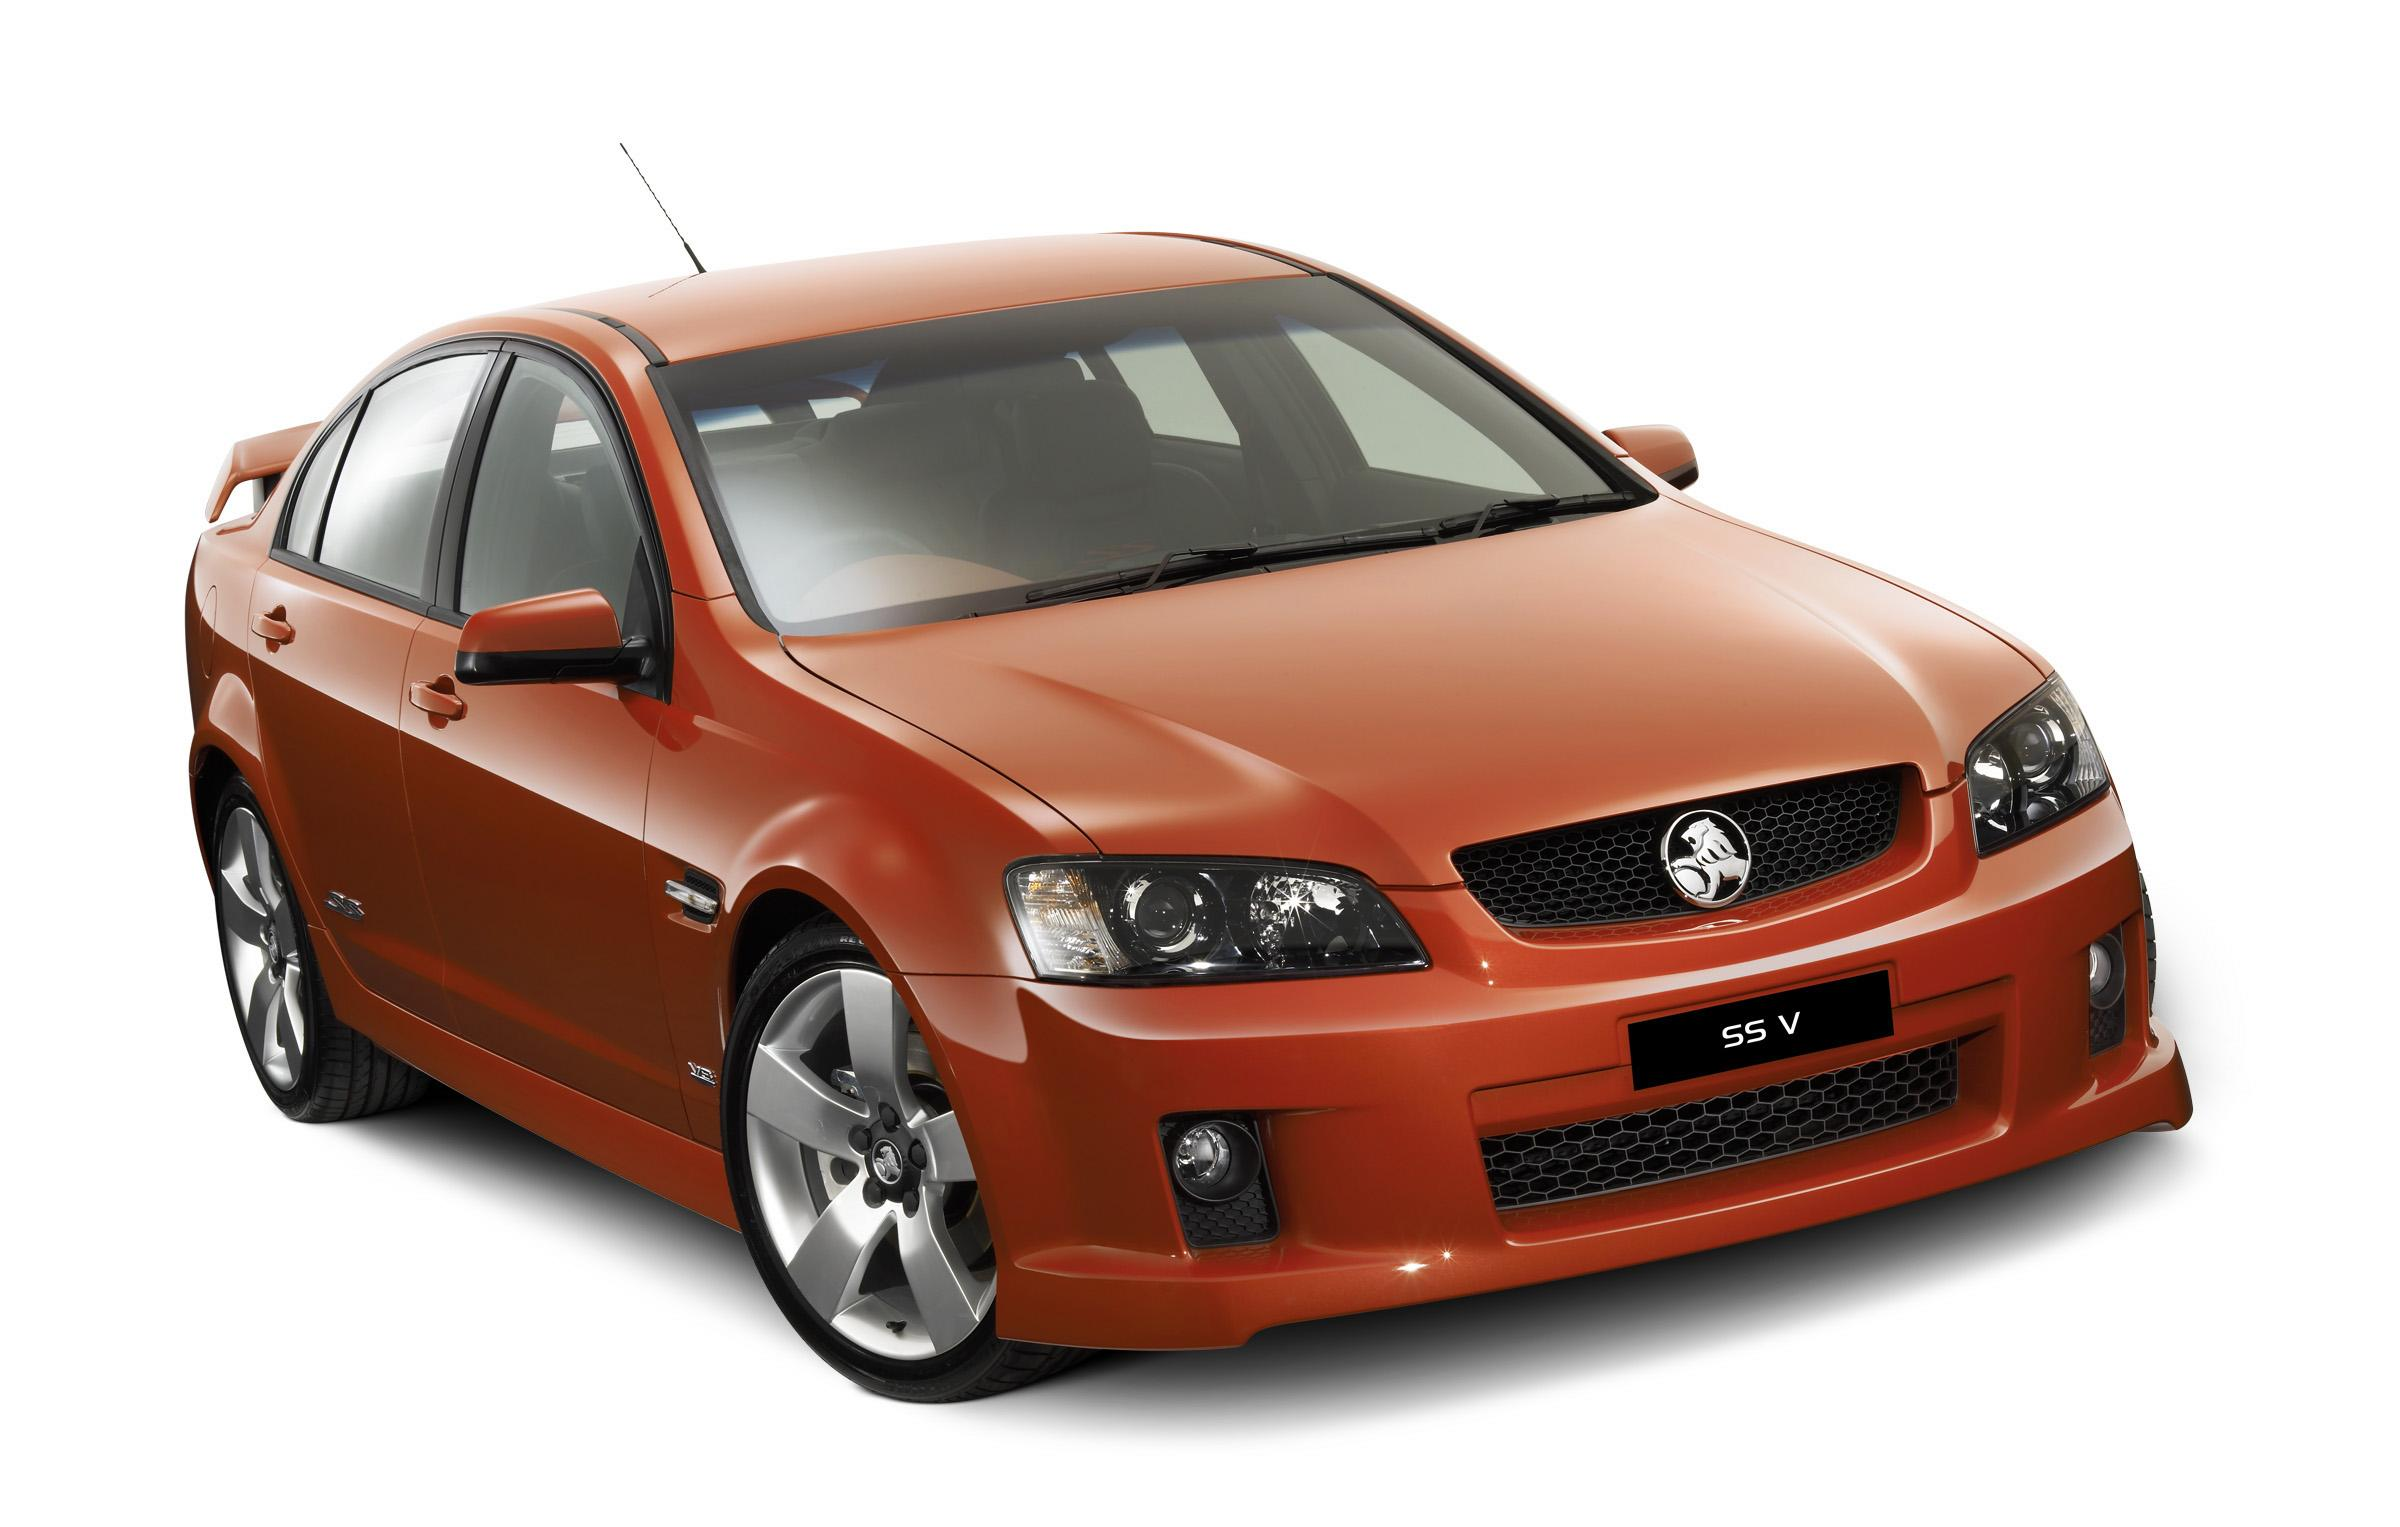 2006 Holden Commodore | Top Speed